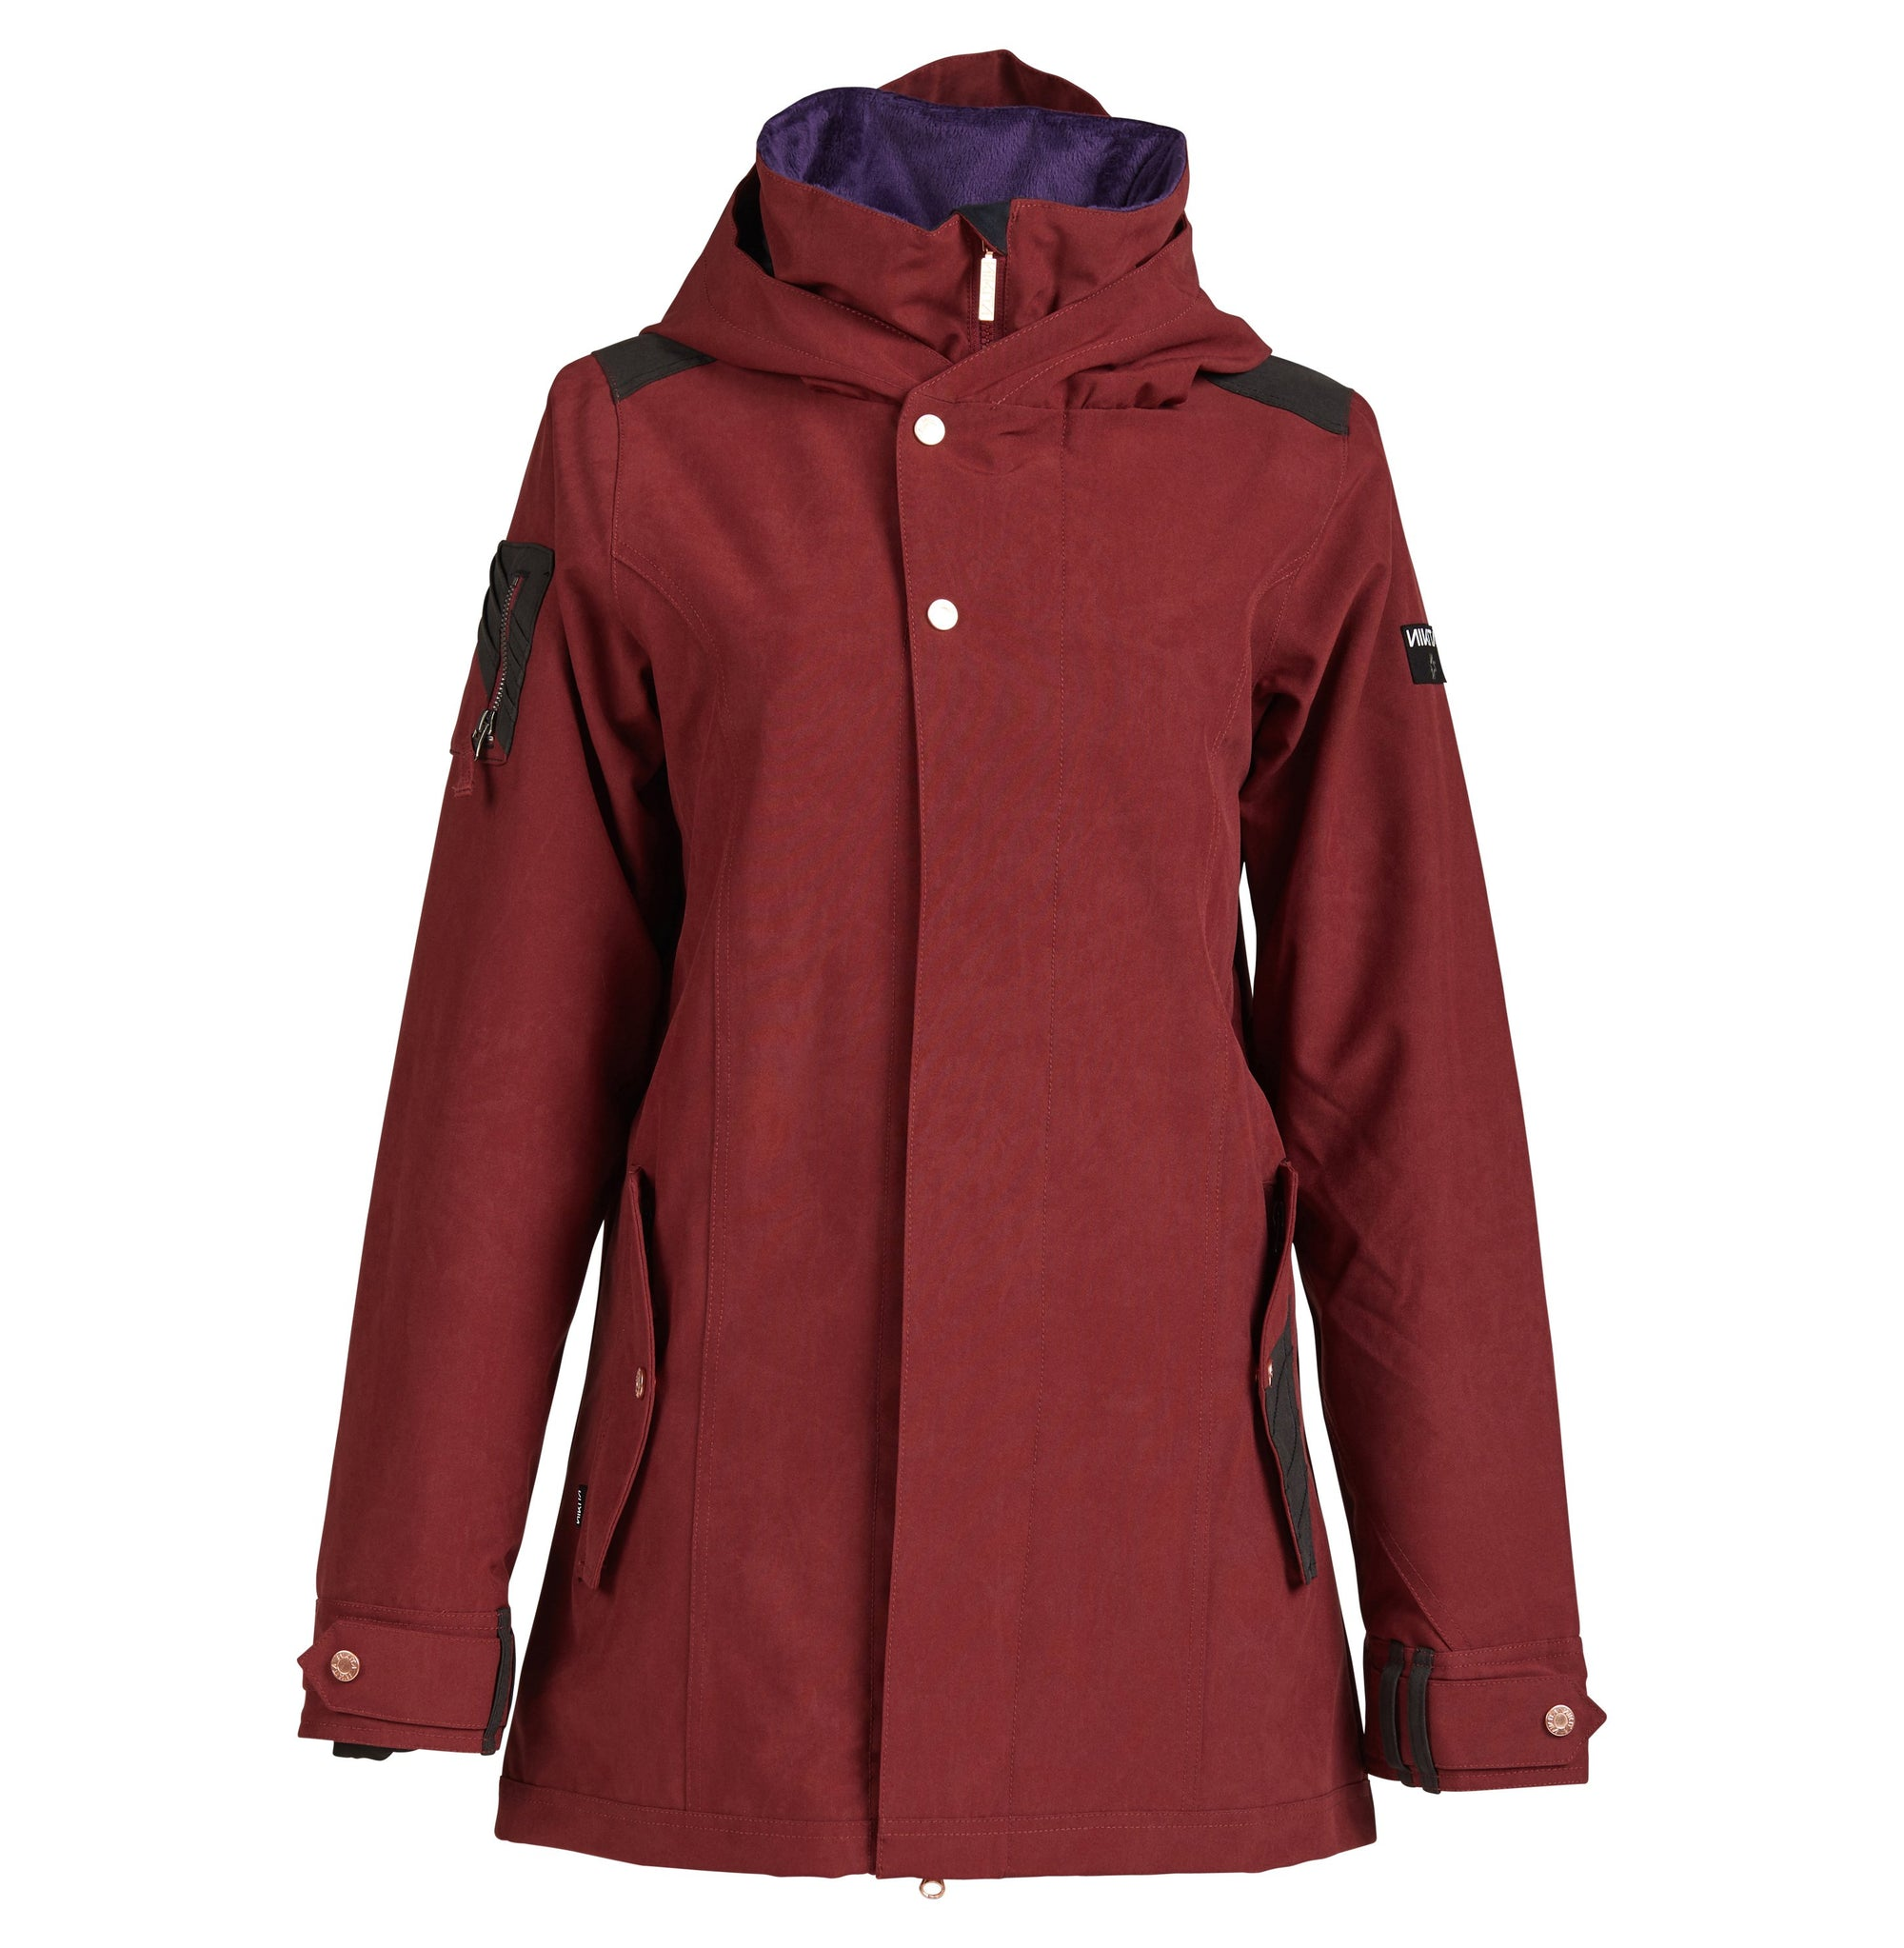 Nikita Womens Banyon Jacket - Merlot - 2020 Snow Jackets - Womens - Trojan Wake Ski Snow